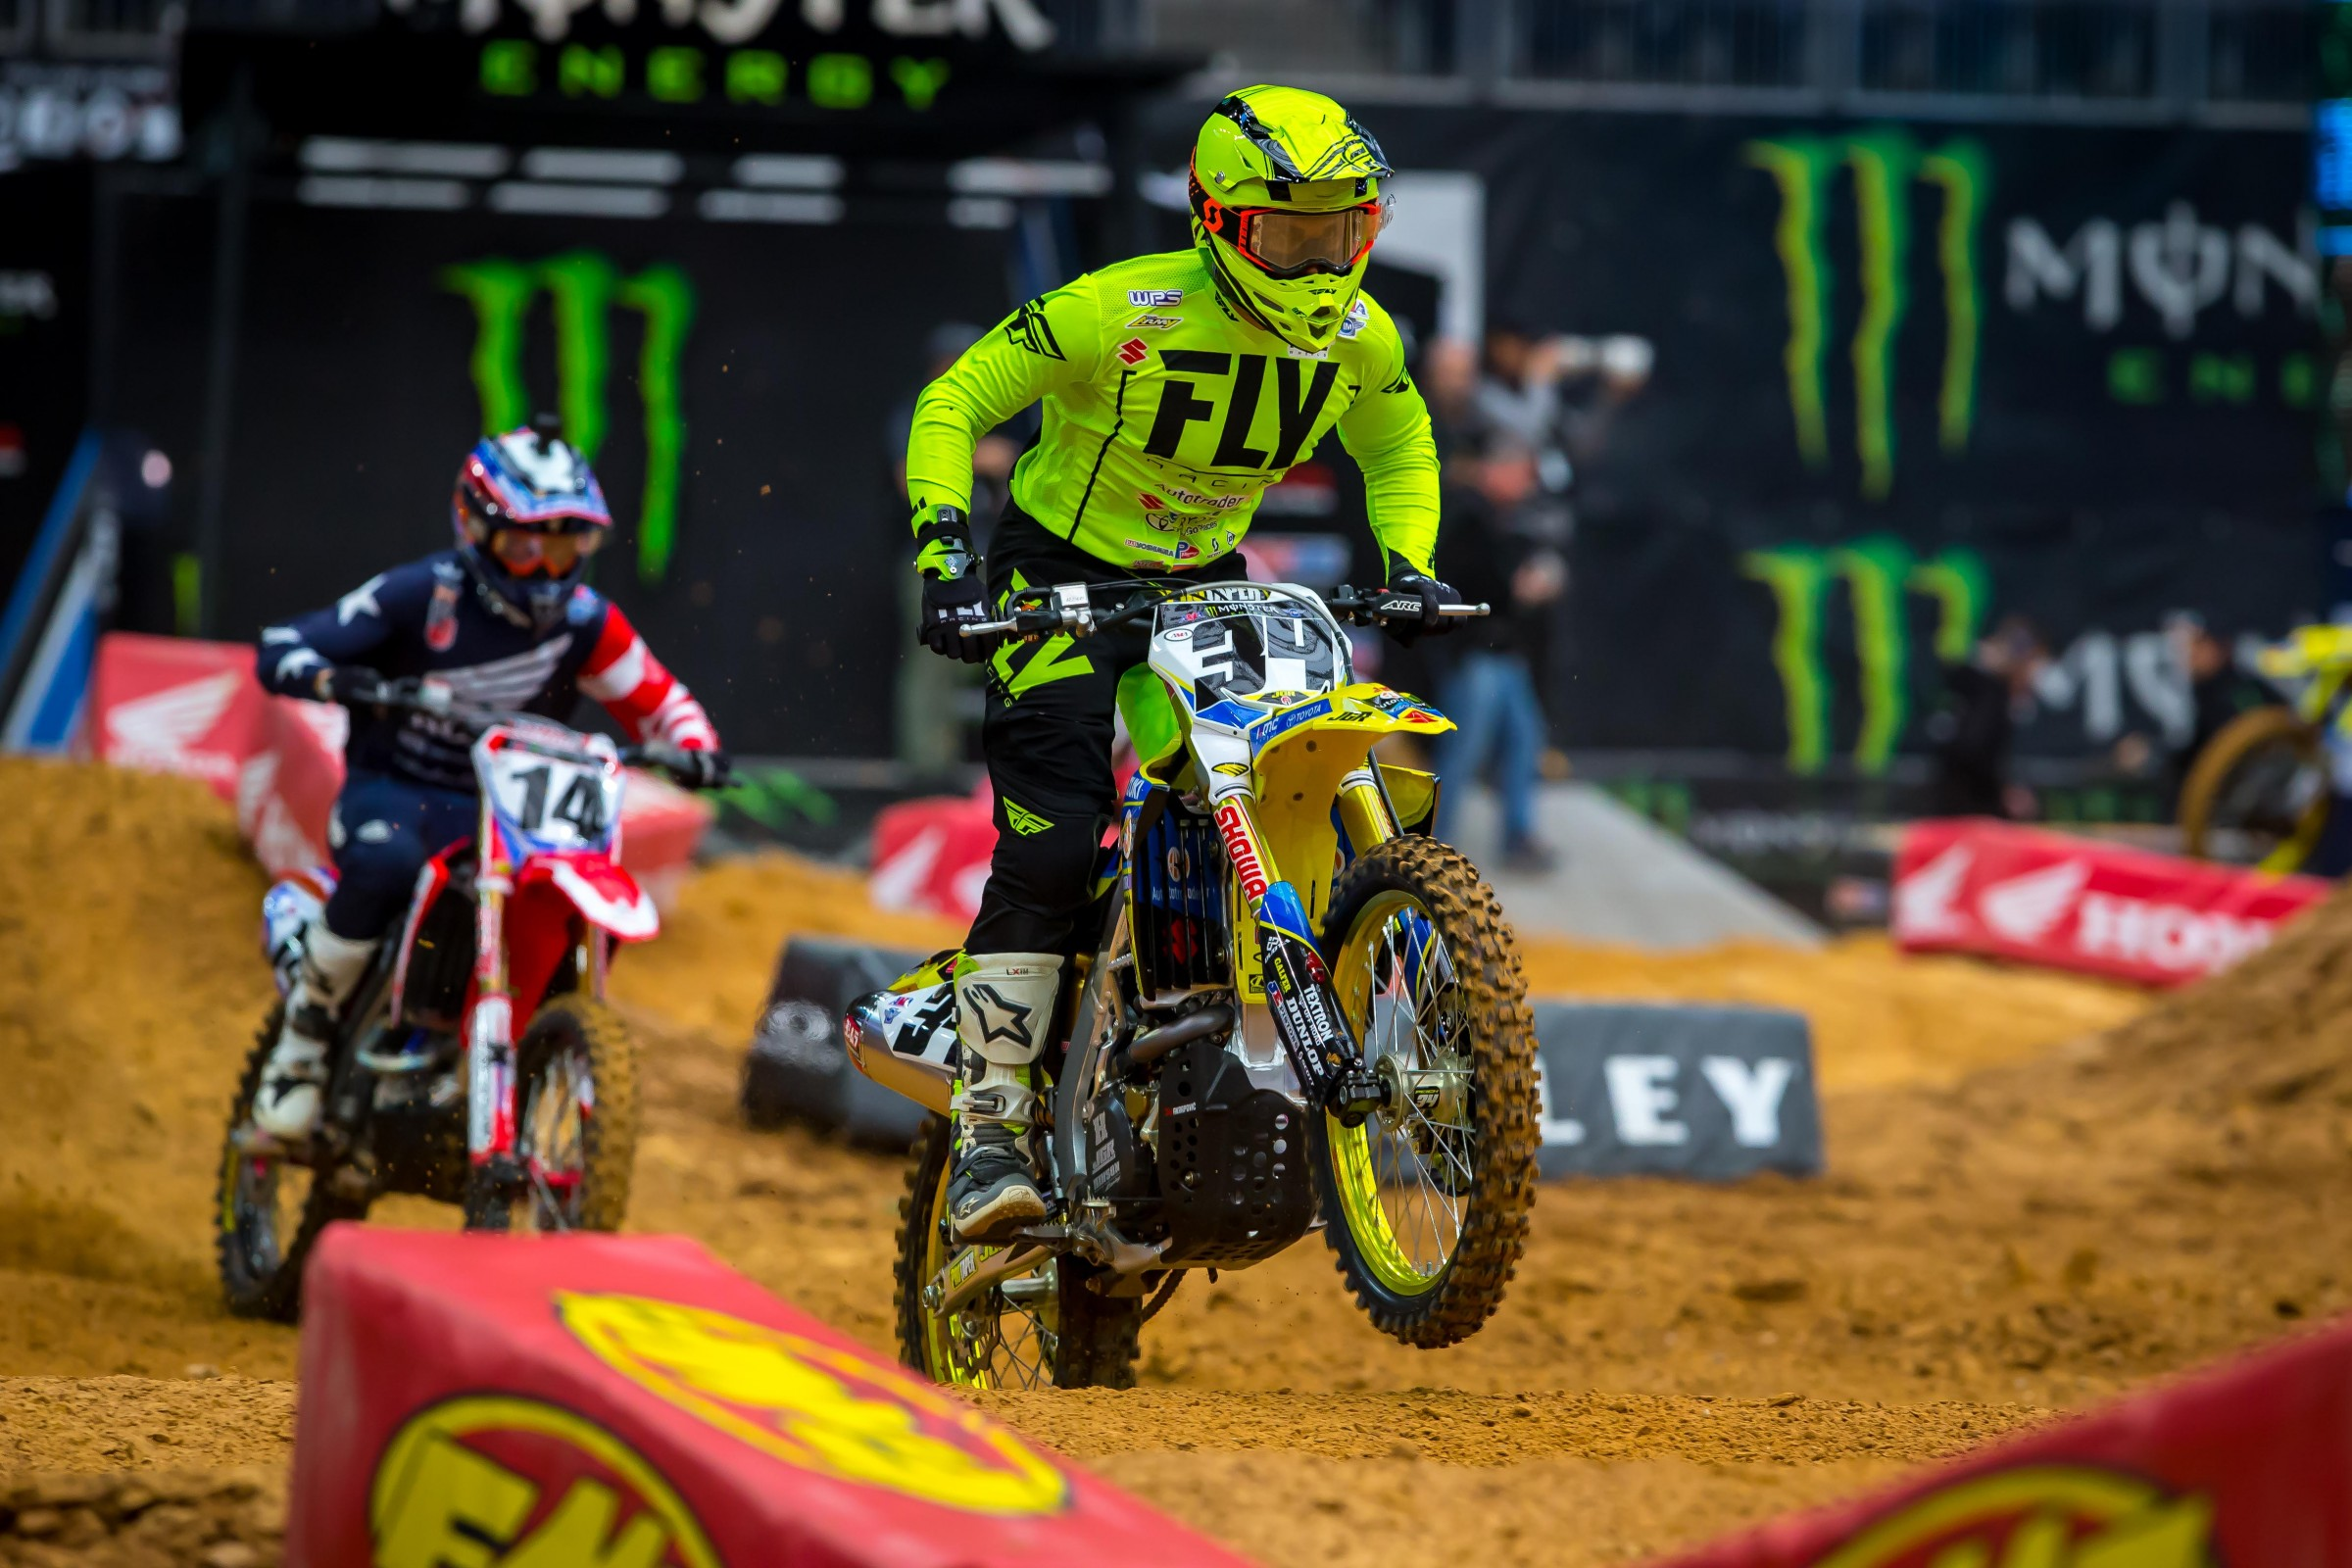 Weston Peick battled hard the whole way and took fifth for the second straight week. Cole Seely was able to get around him, though, and at one point even got Barcia for third. Barcia got him back, though.